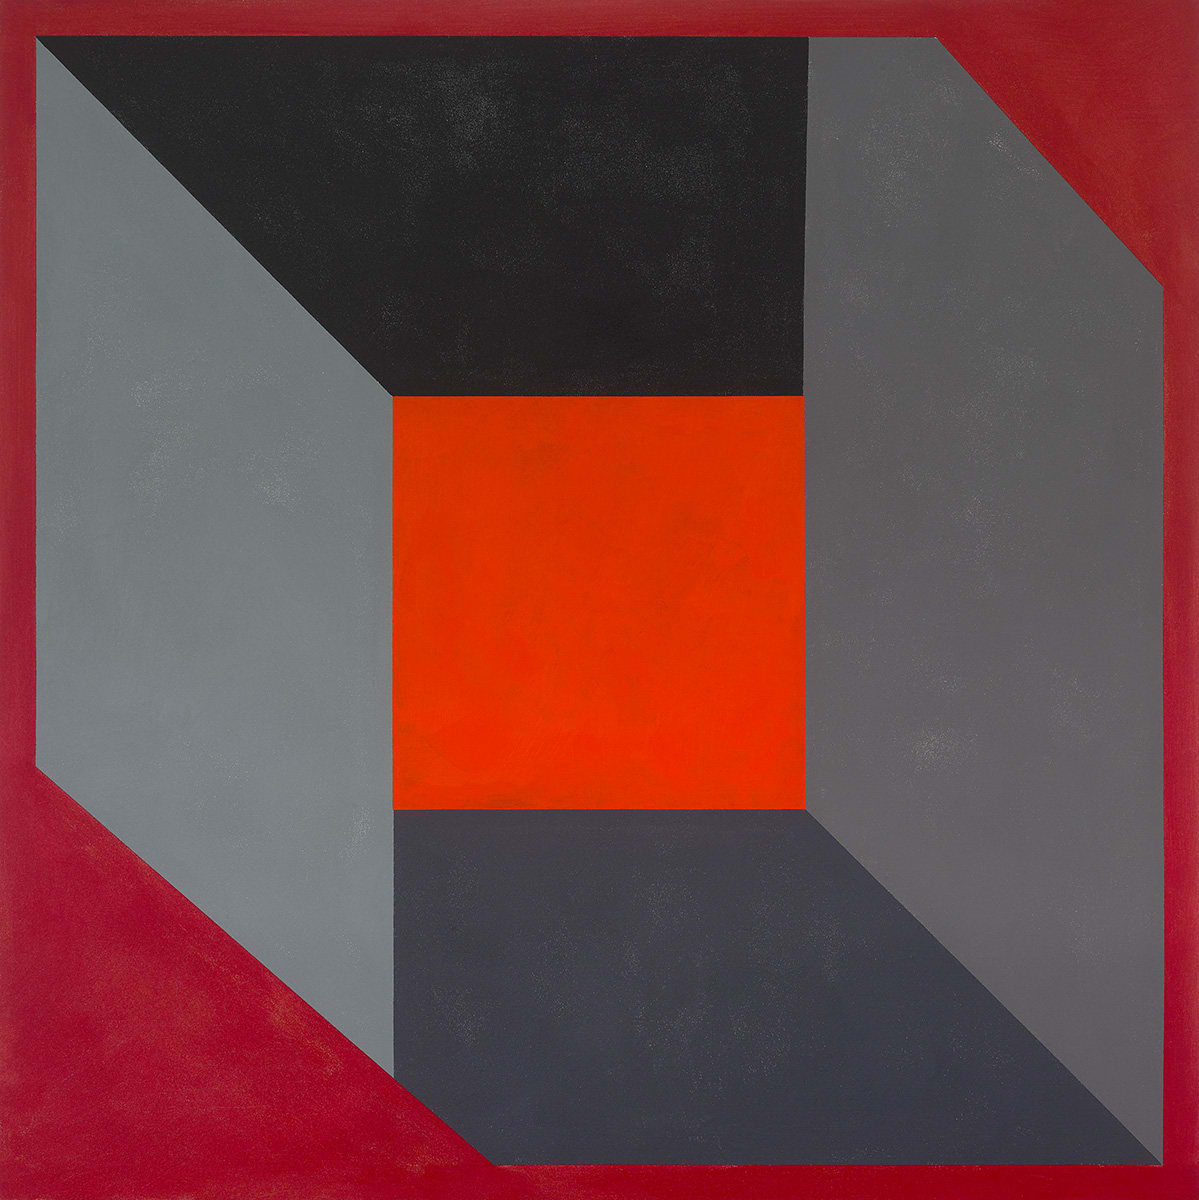 Ric Evans, Revealed Forms Red, 2018